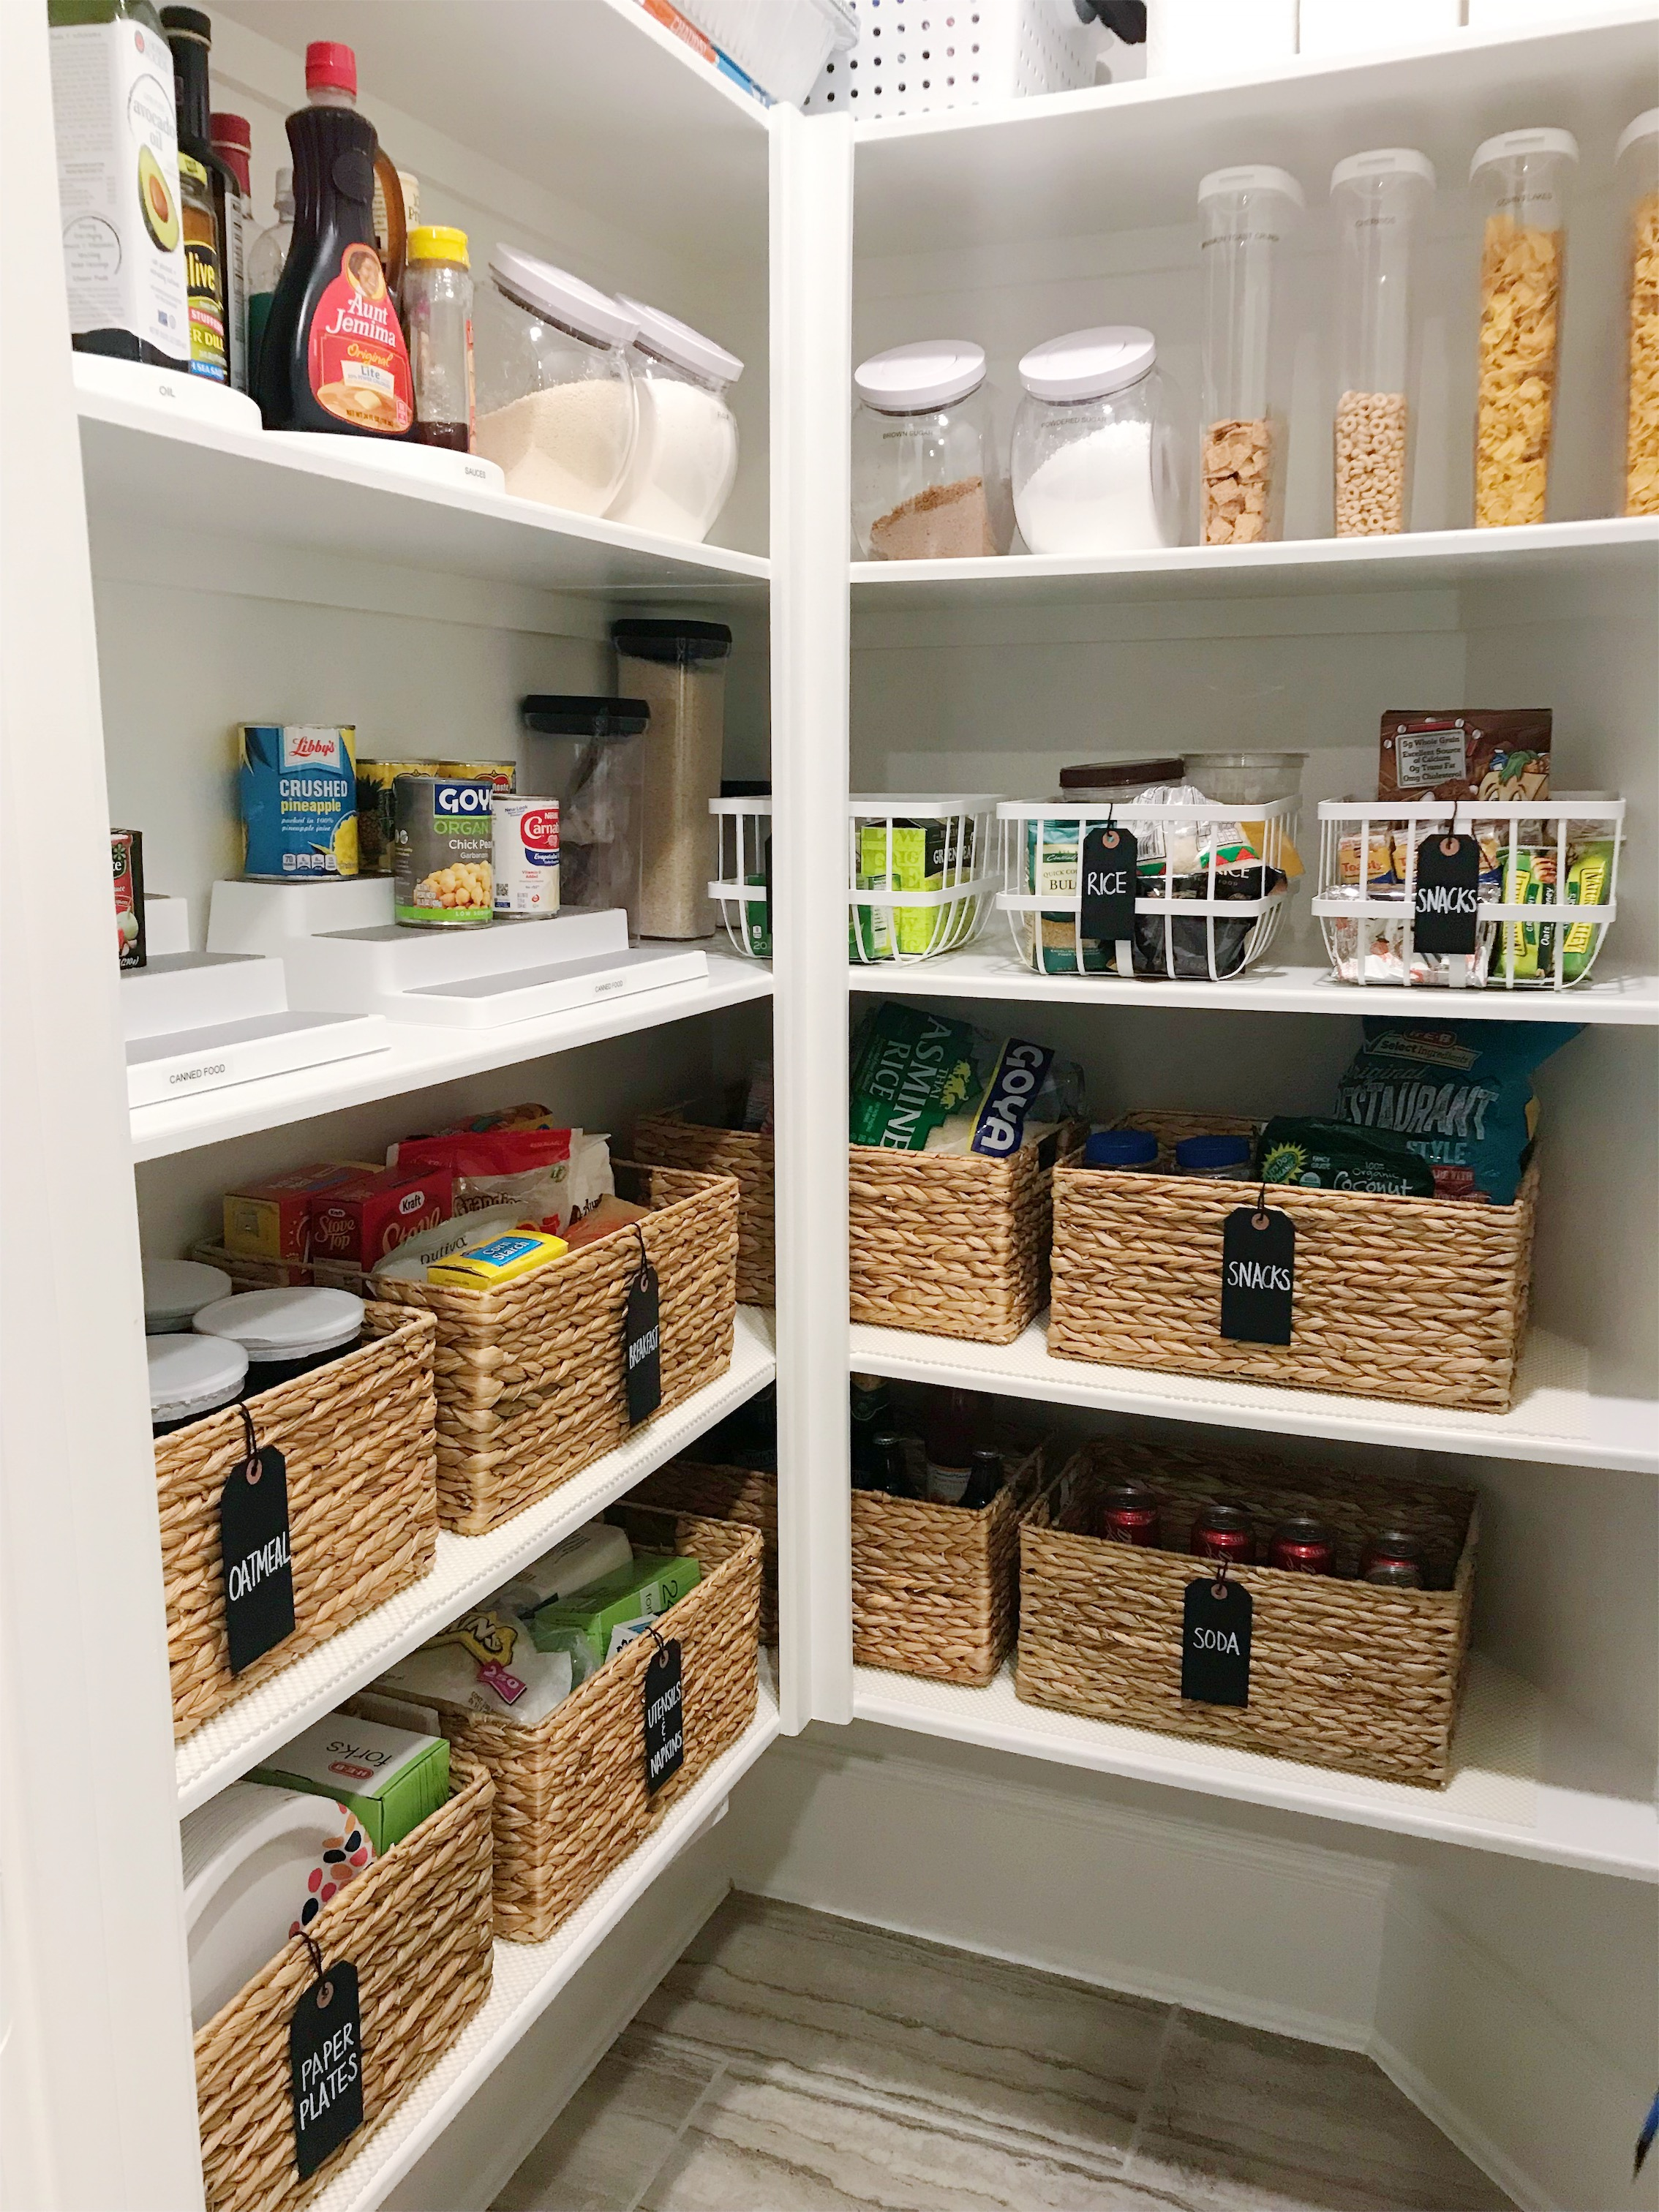 Pantry Organization - This pantry was decluttered and organized and now reveals a functional and organized space.